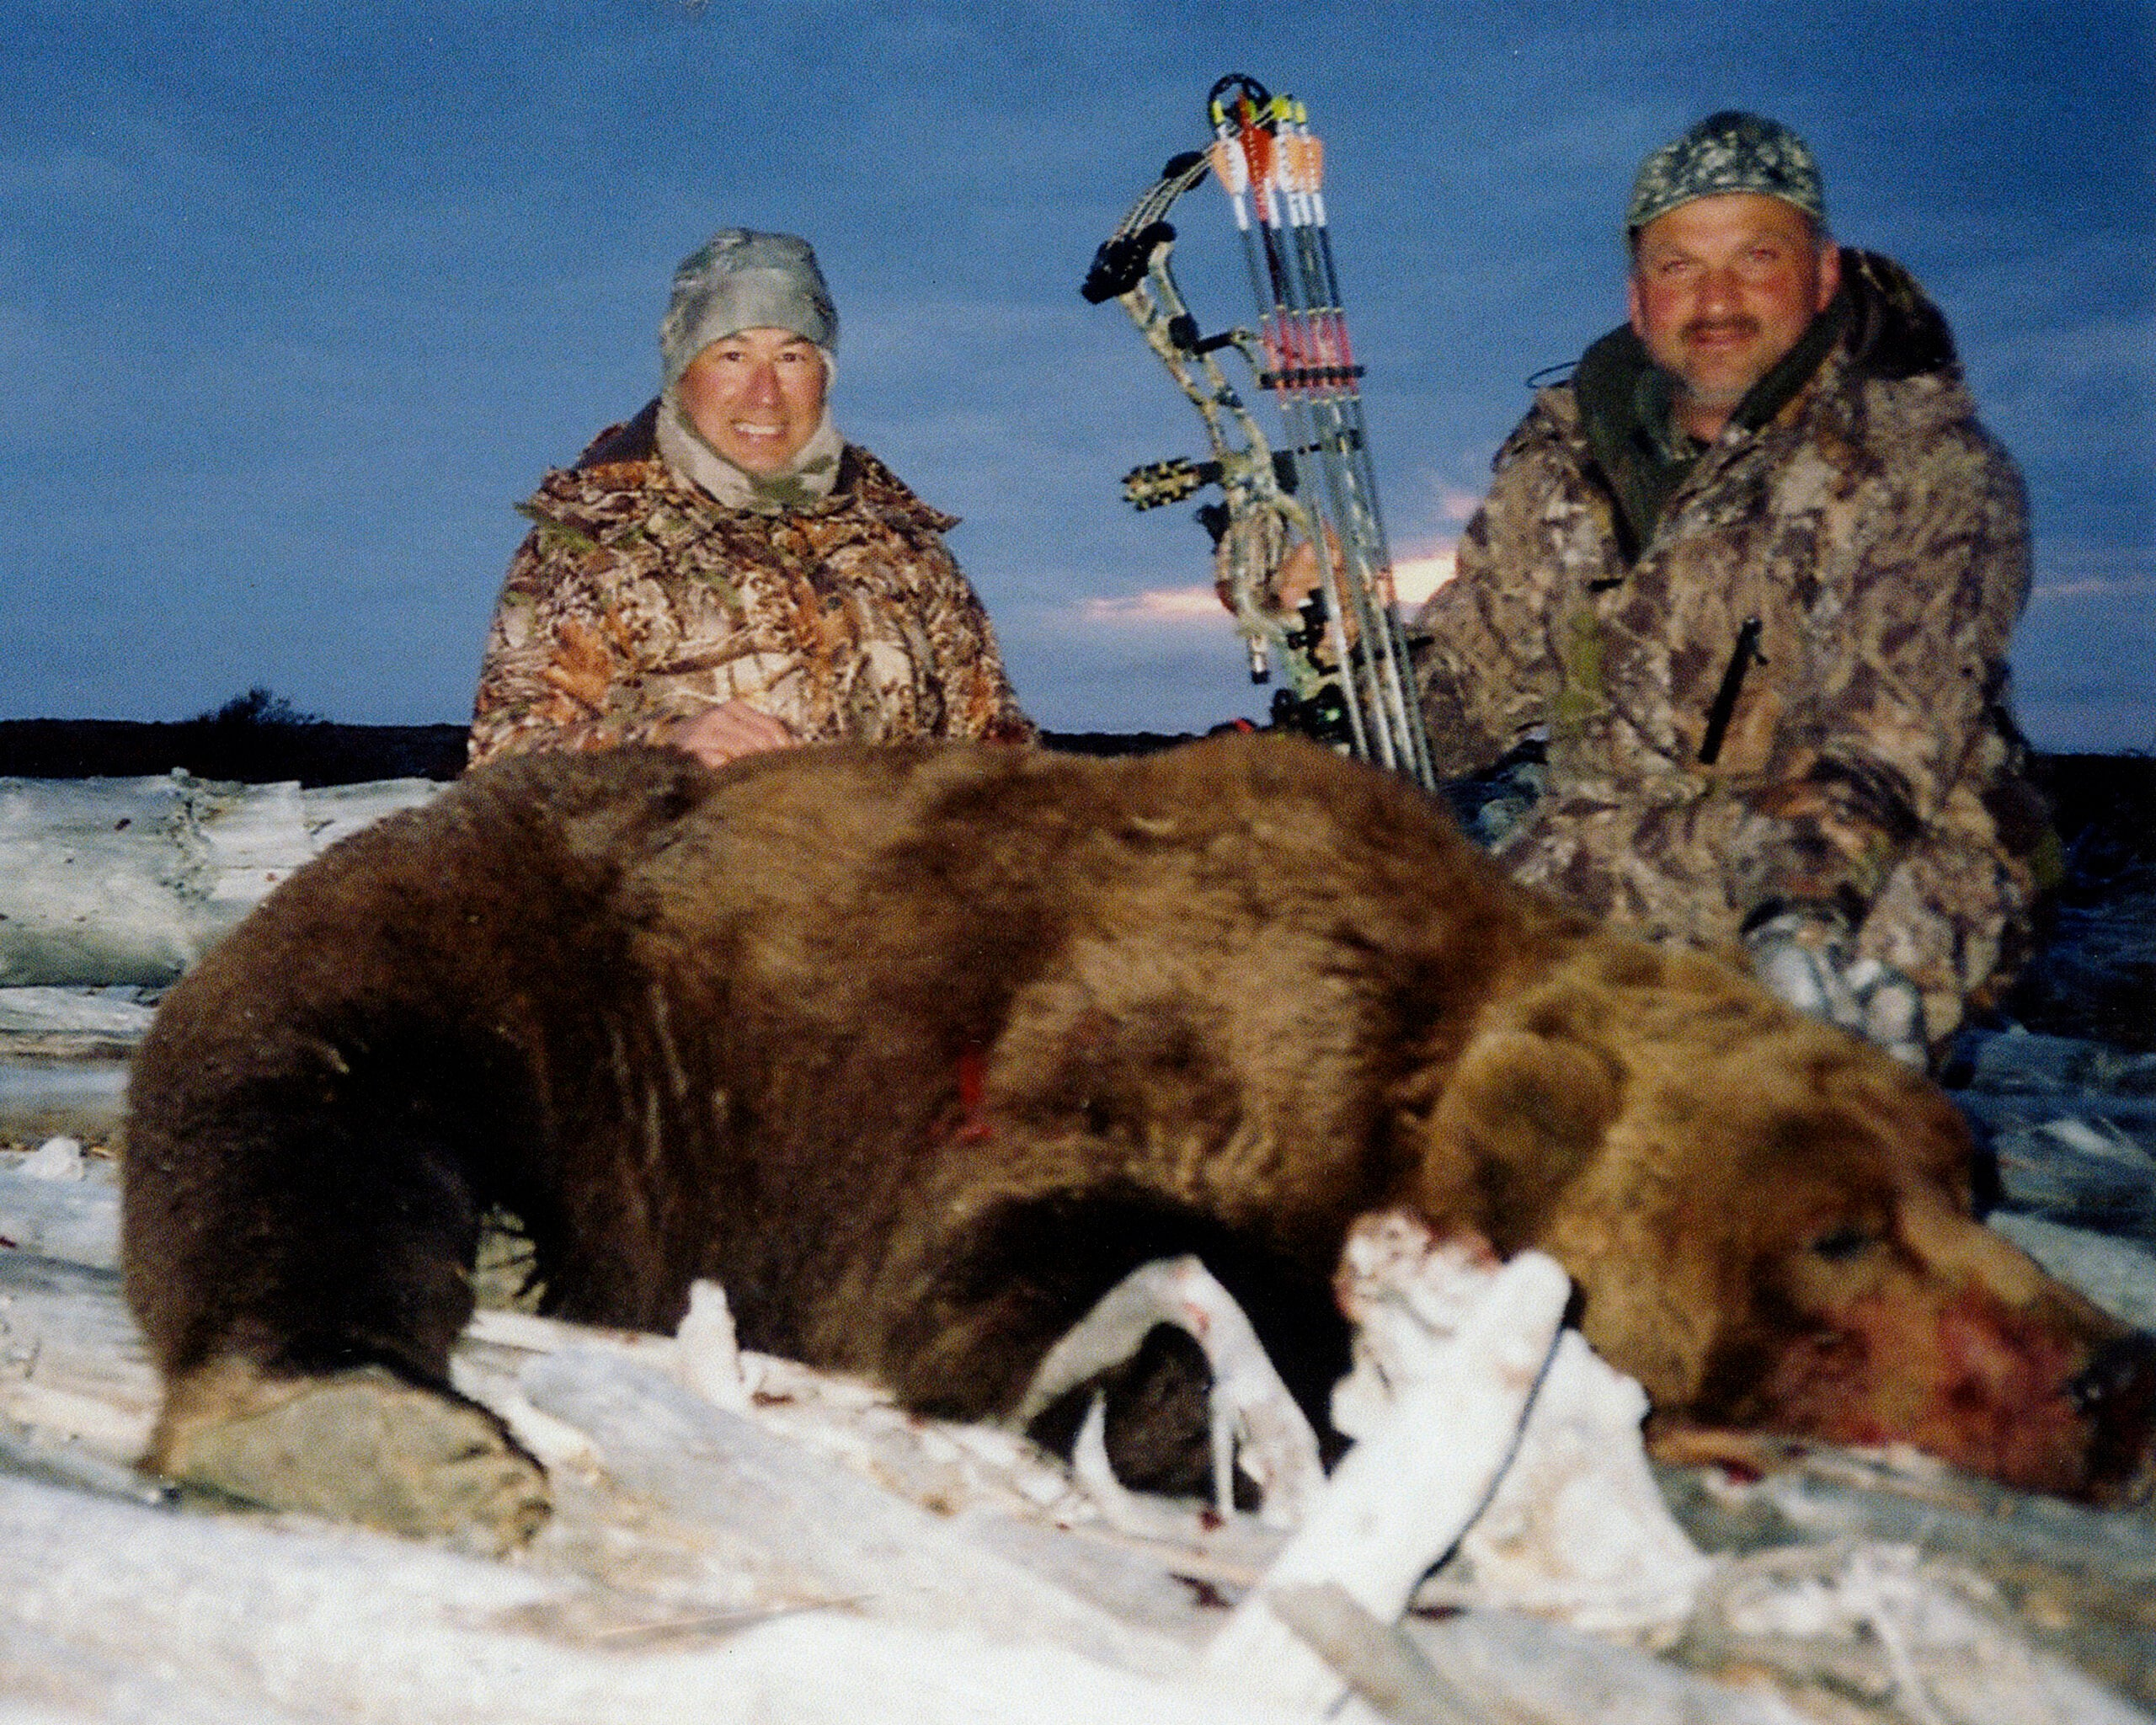 Huge Bruins: 17 Brown and Grizzly Bears from the B&C Record Books (+ How to Judge Them)